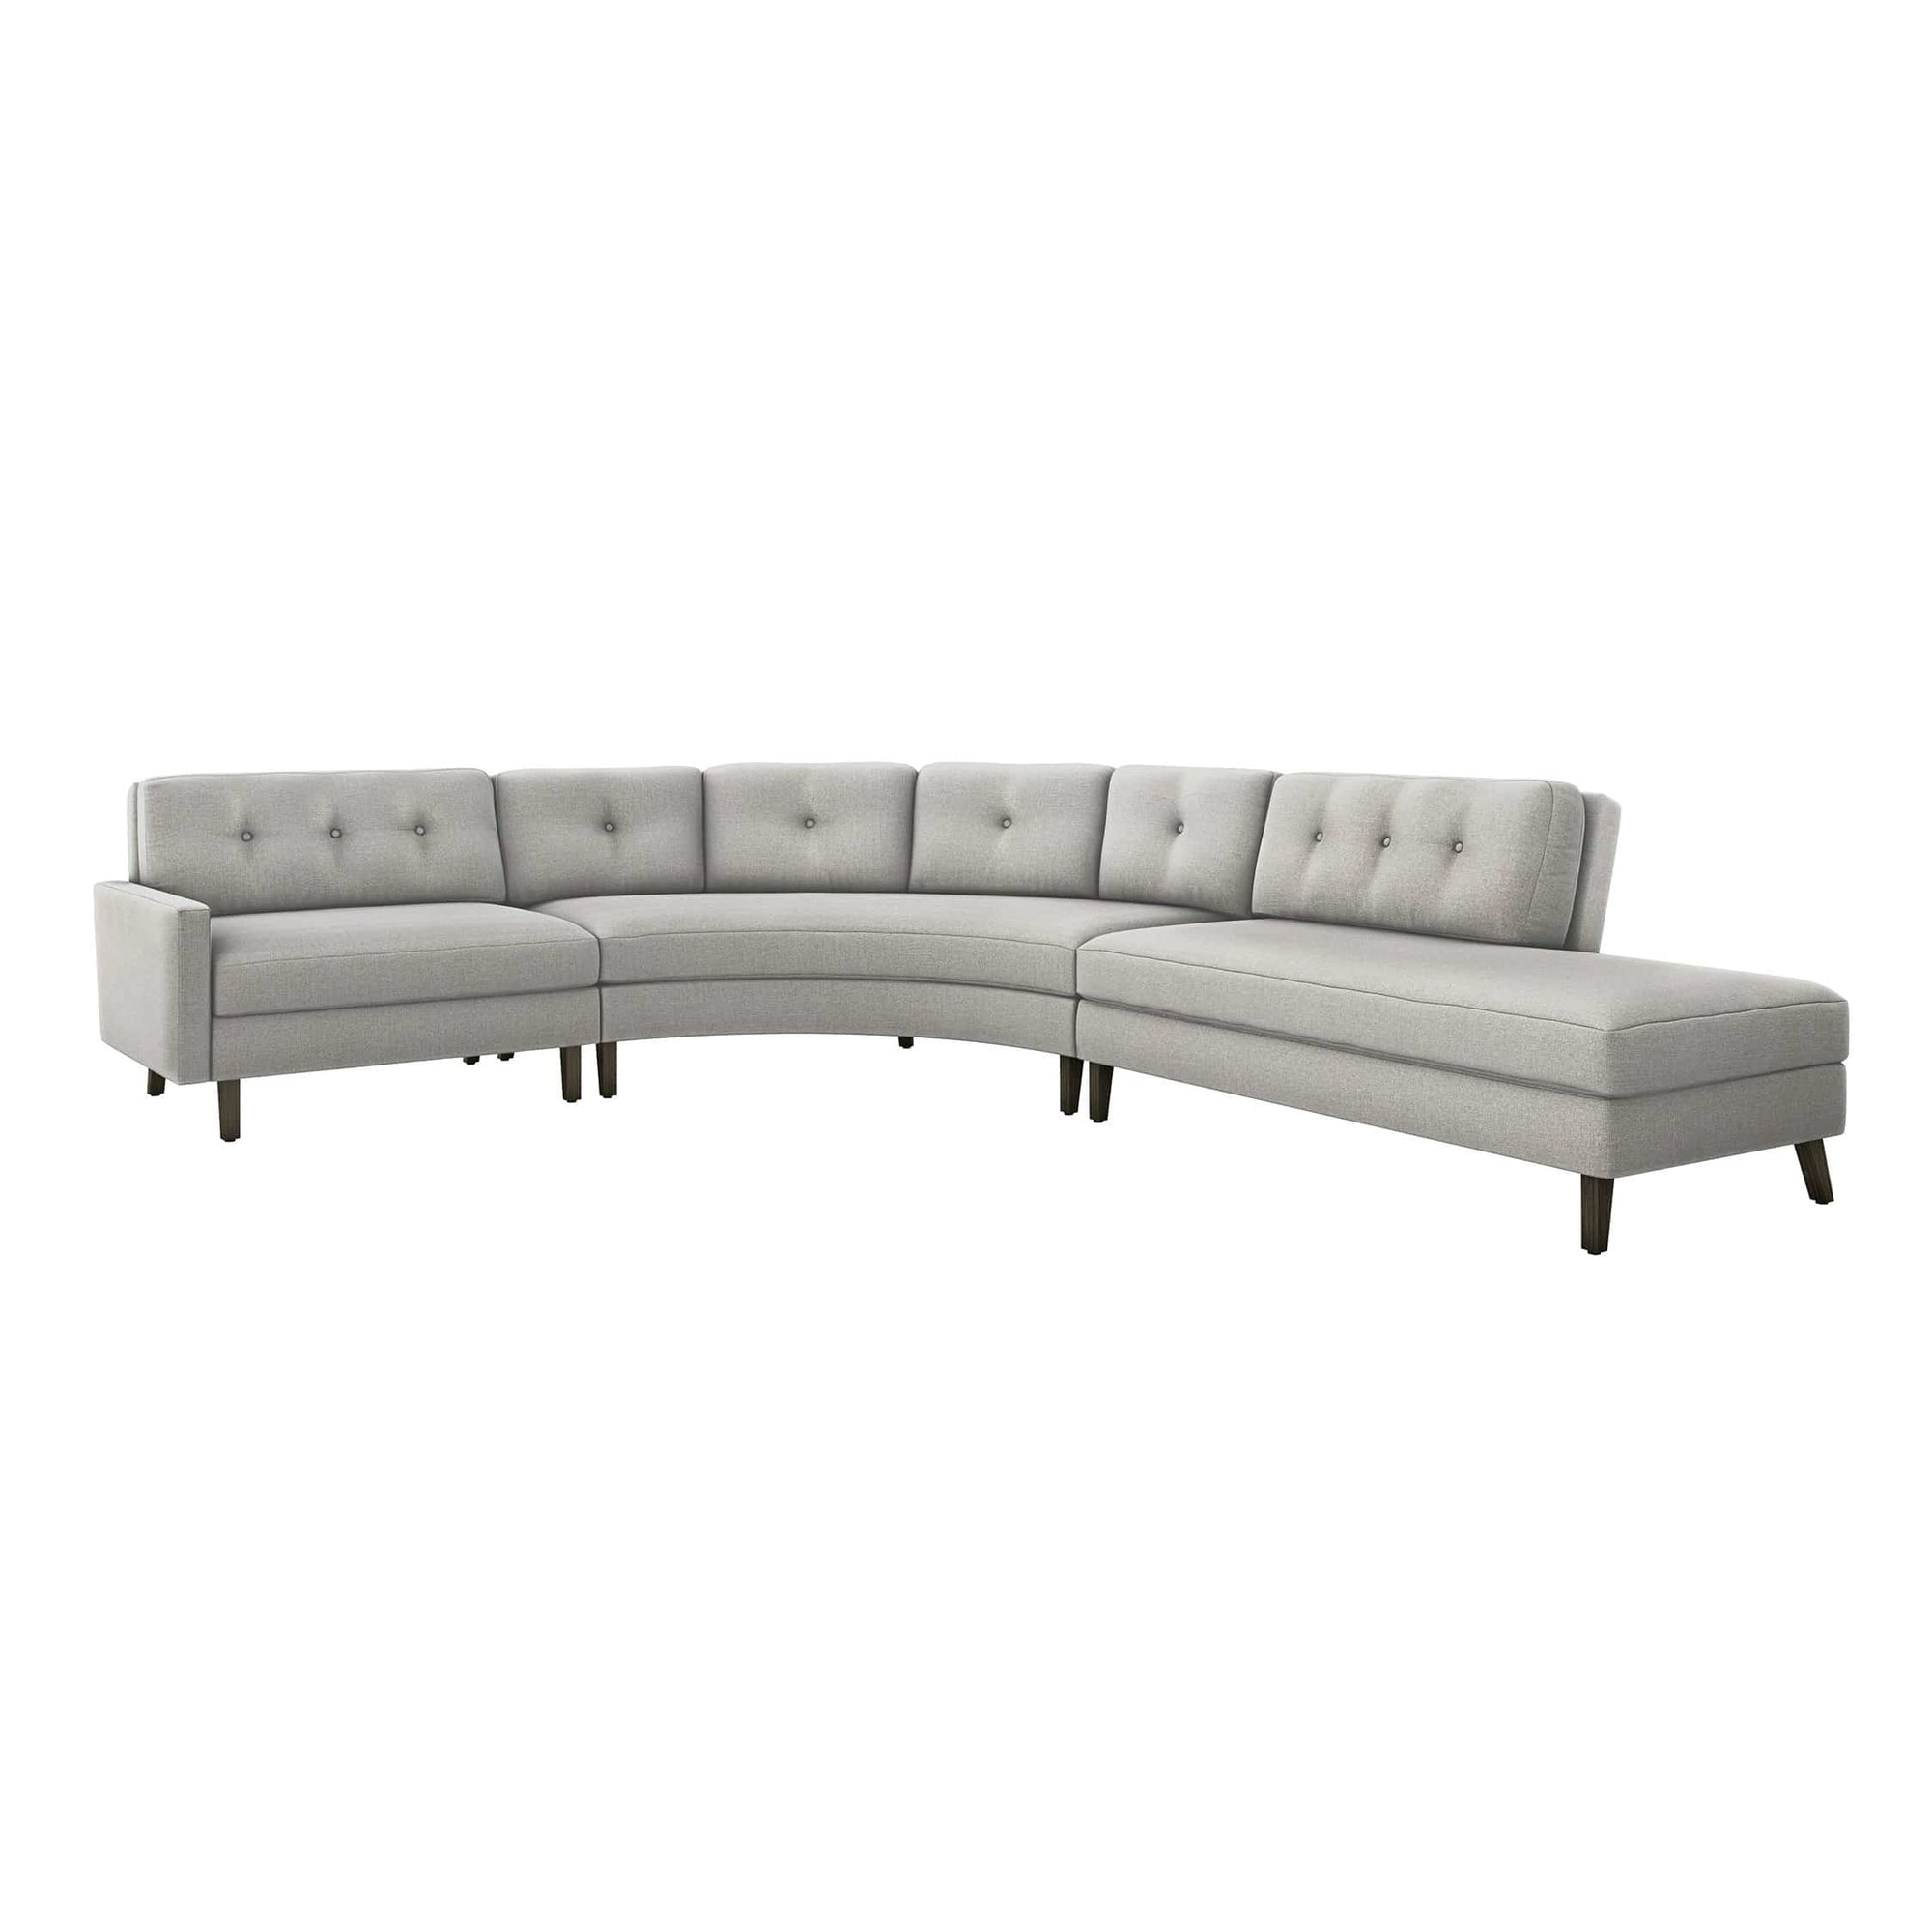 Interlude Home Interlude Home Aventura Right Chaise 3 Piece Sectional - Light Gray 199021-6